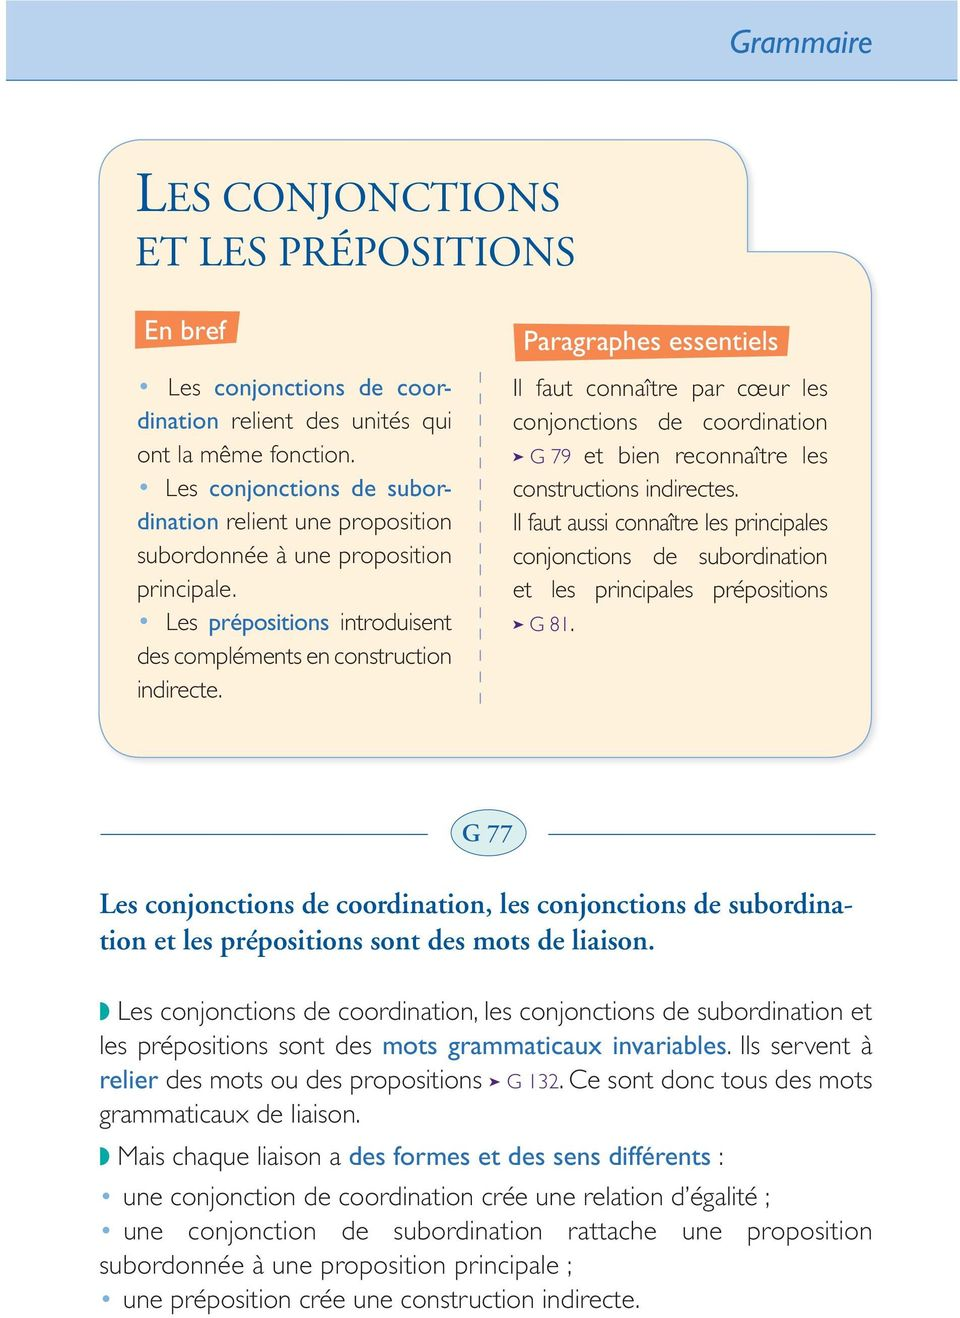 Conjonction de subordination relative dating